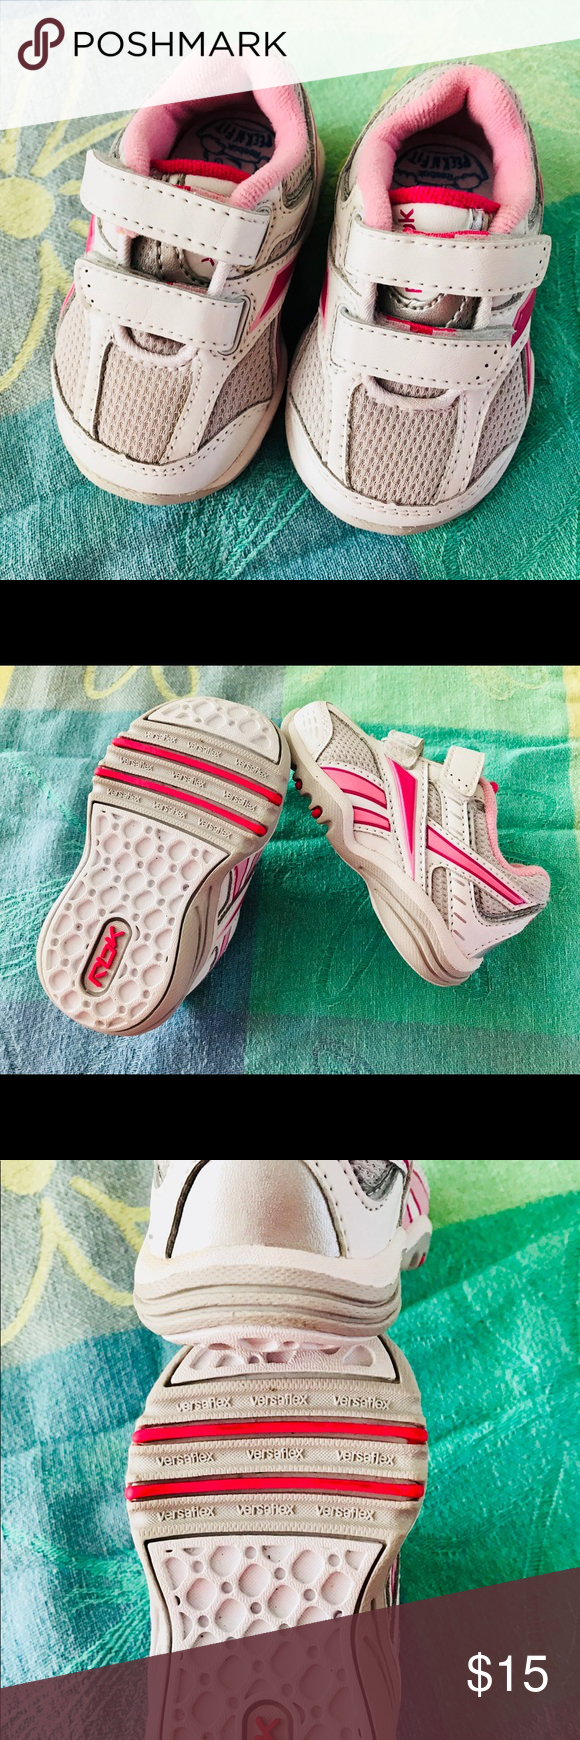 ee4d8a3811d Infant Reebok s Pink and white size 2 Baby girl Reebok s with peek n  fit  and versaflex soles. Velcro for easy on and off. They are in like new  condition ...